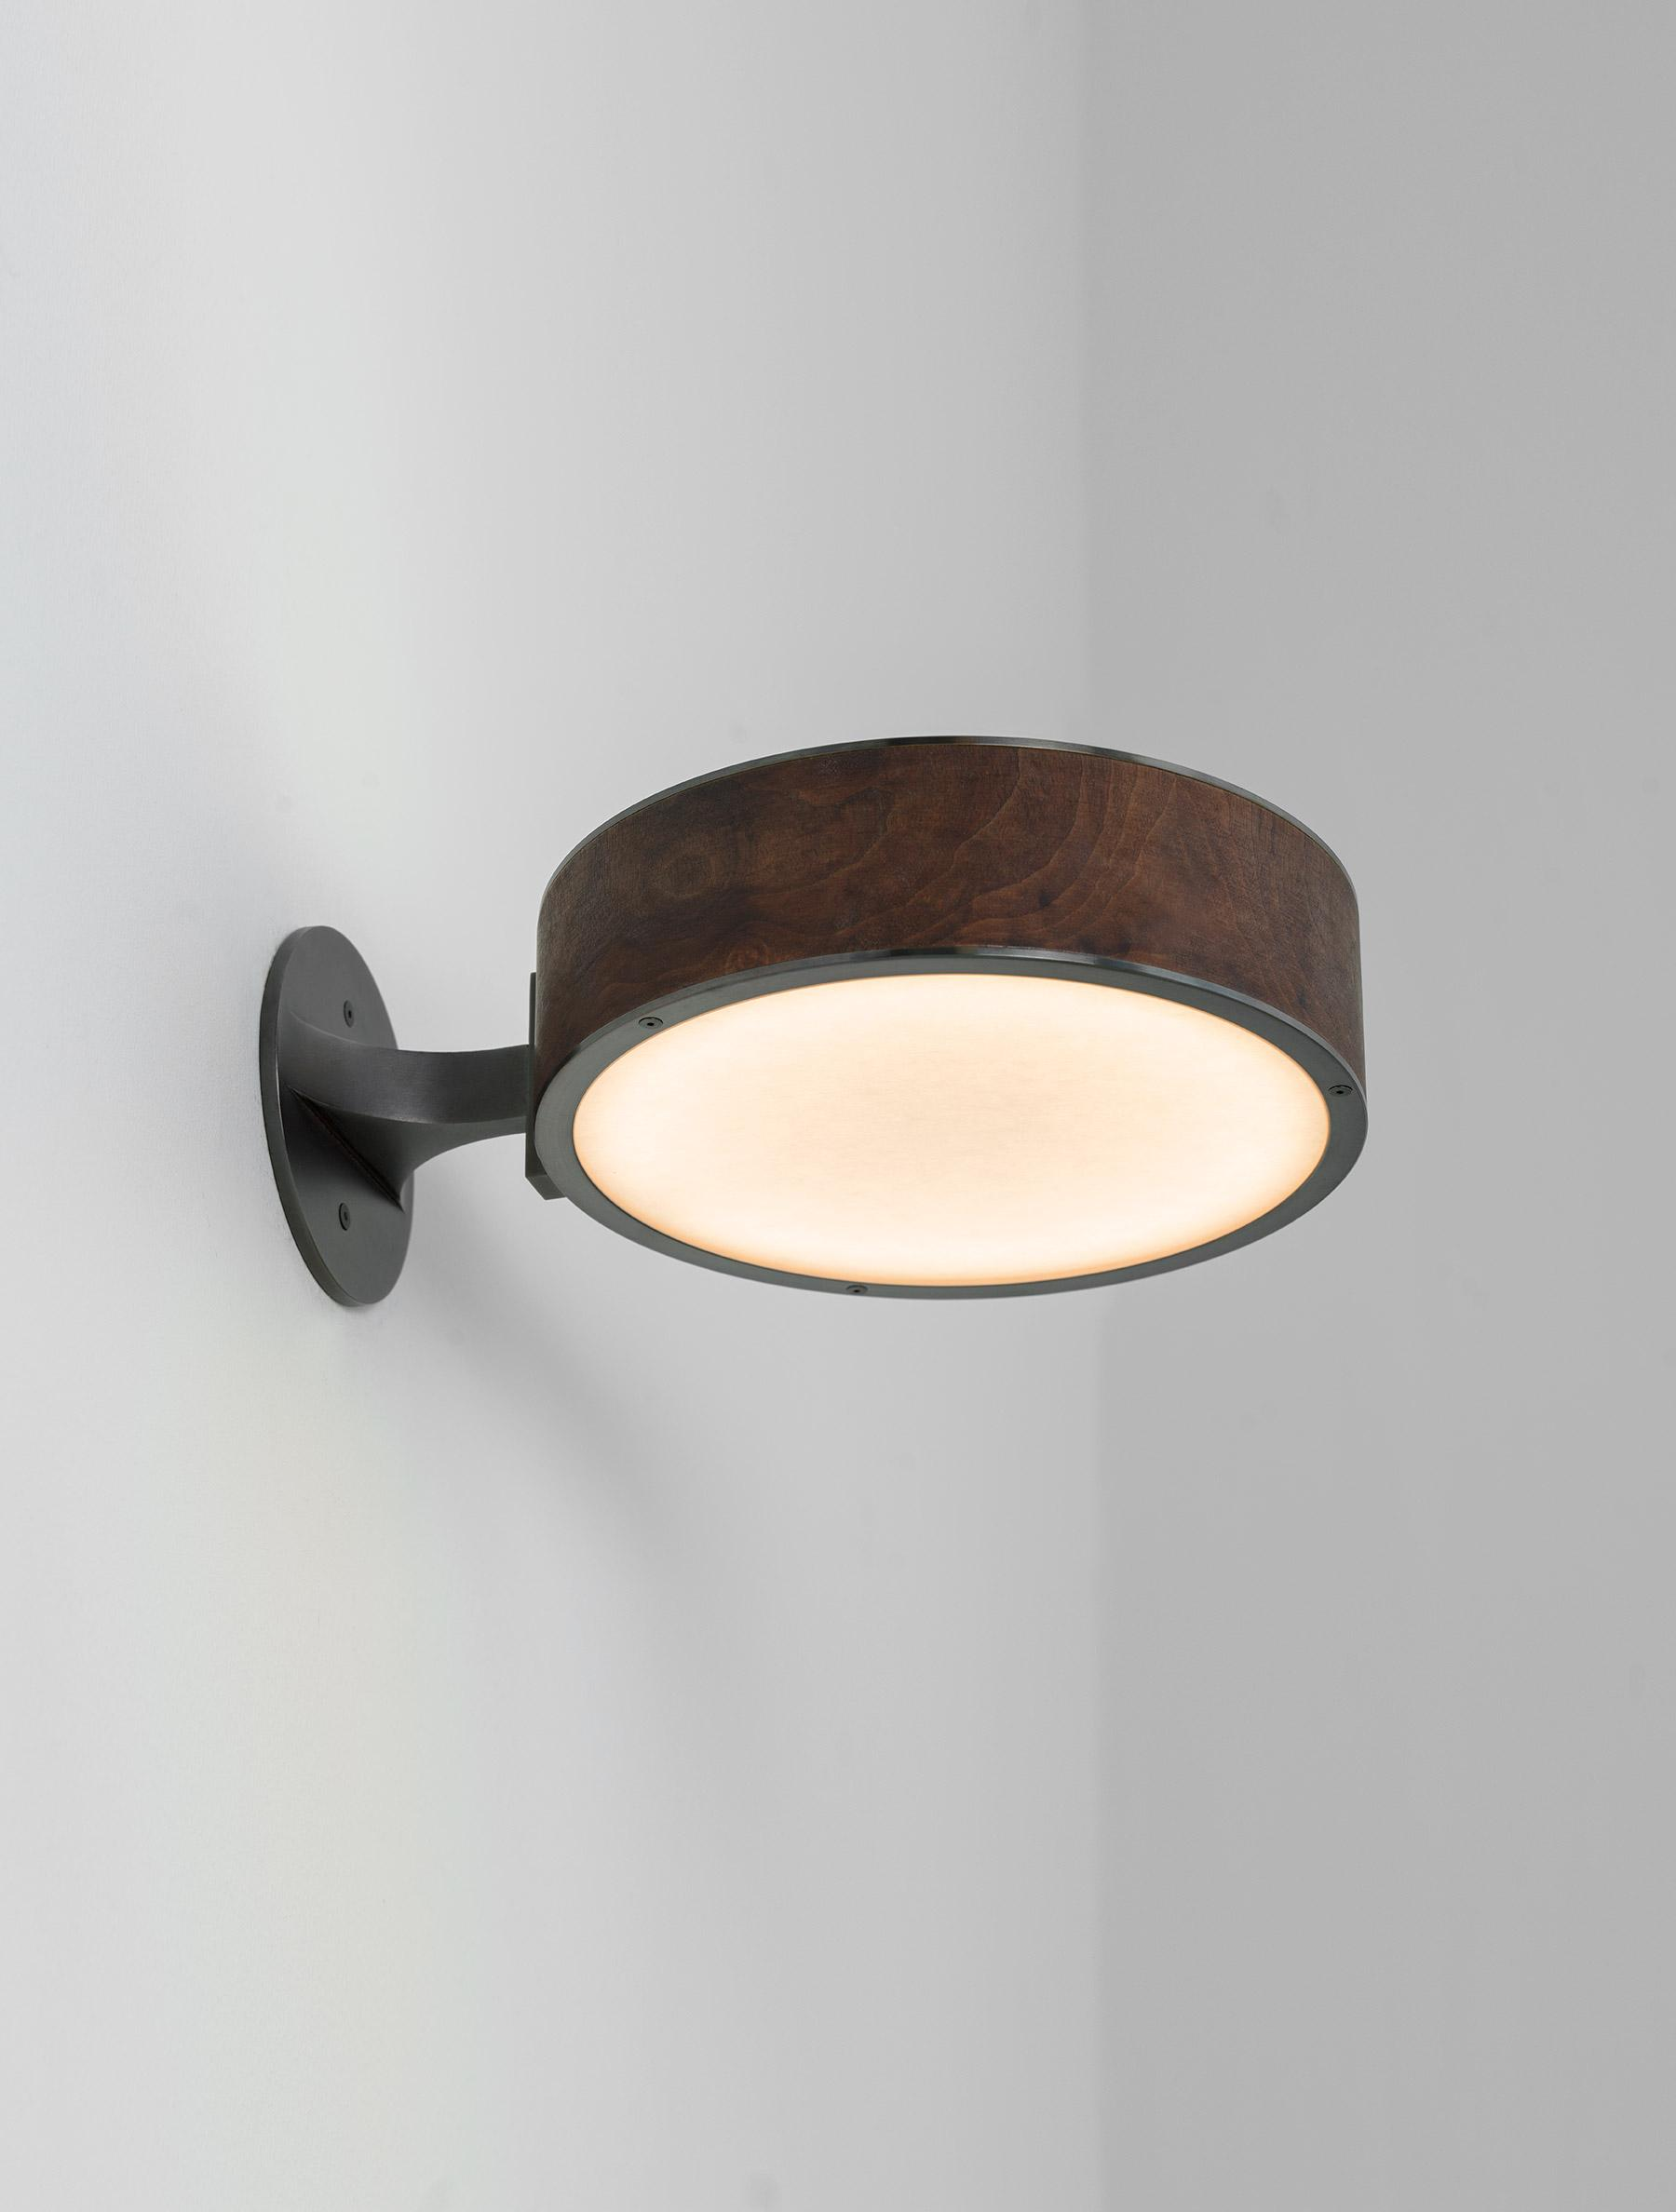 "Monoscope Sconce 10"" shown in Maker Black, Walnut Burl"